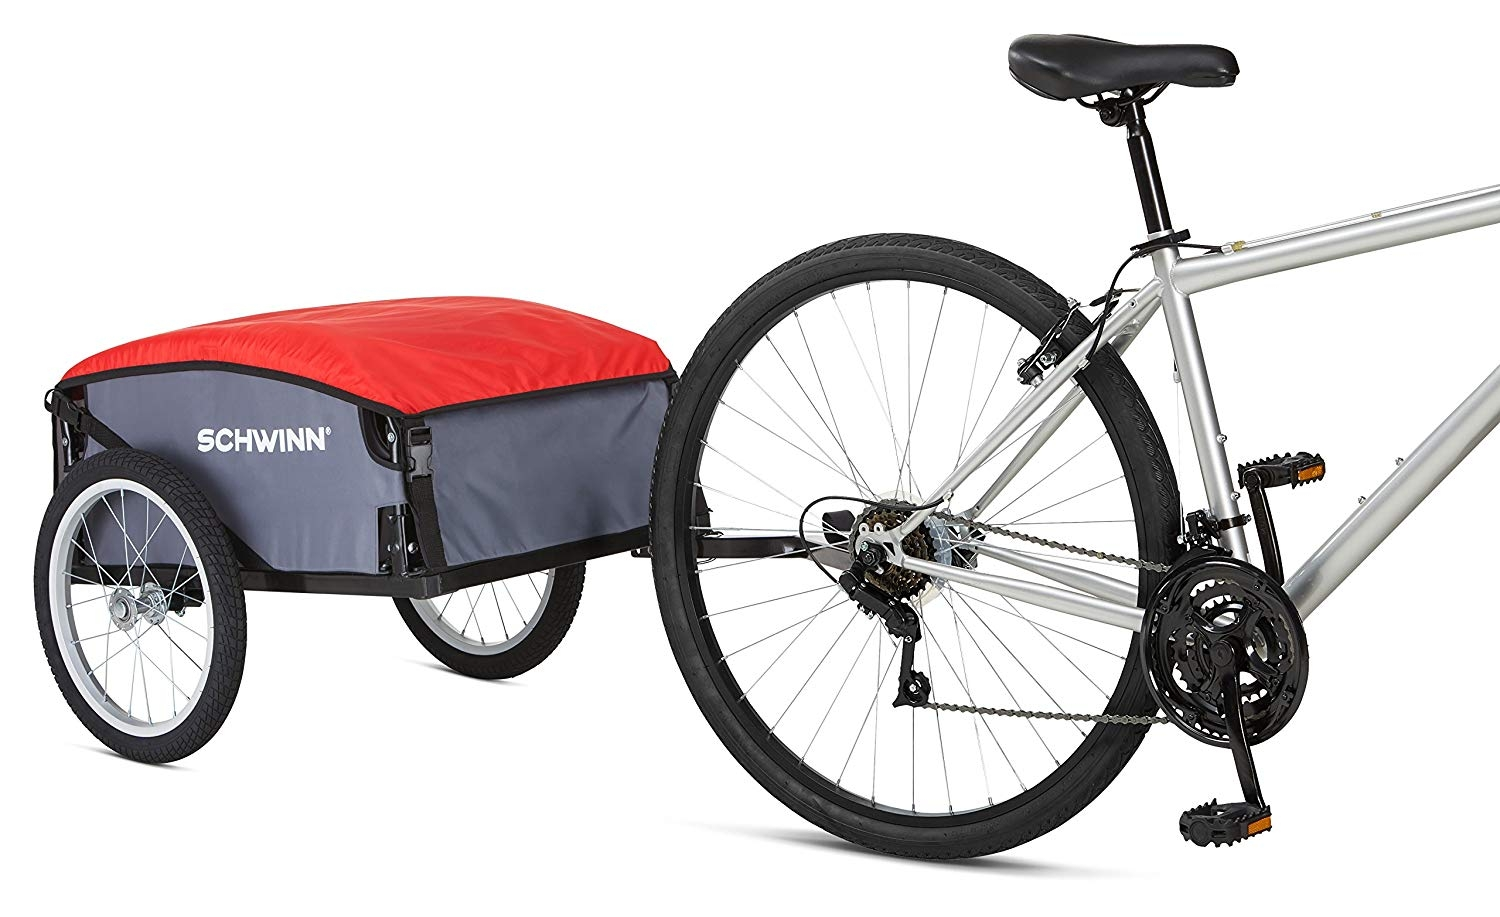 Haul Your Gear with This Bicycle Cargo Trailer